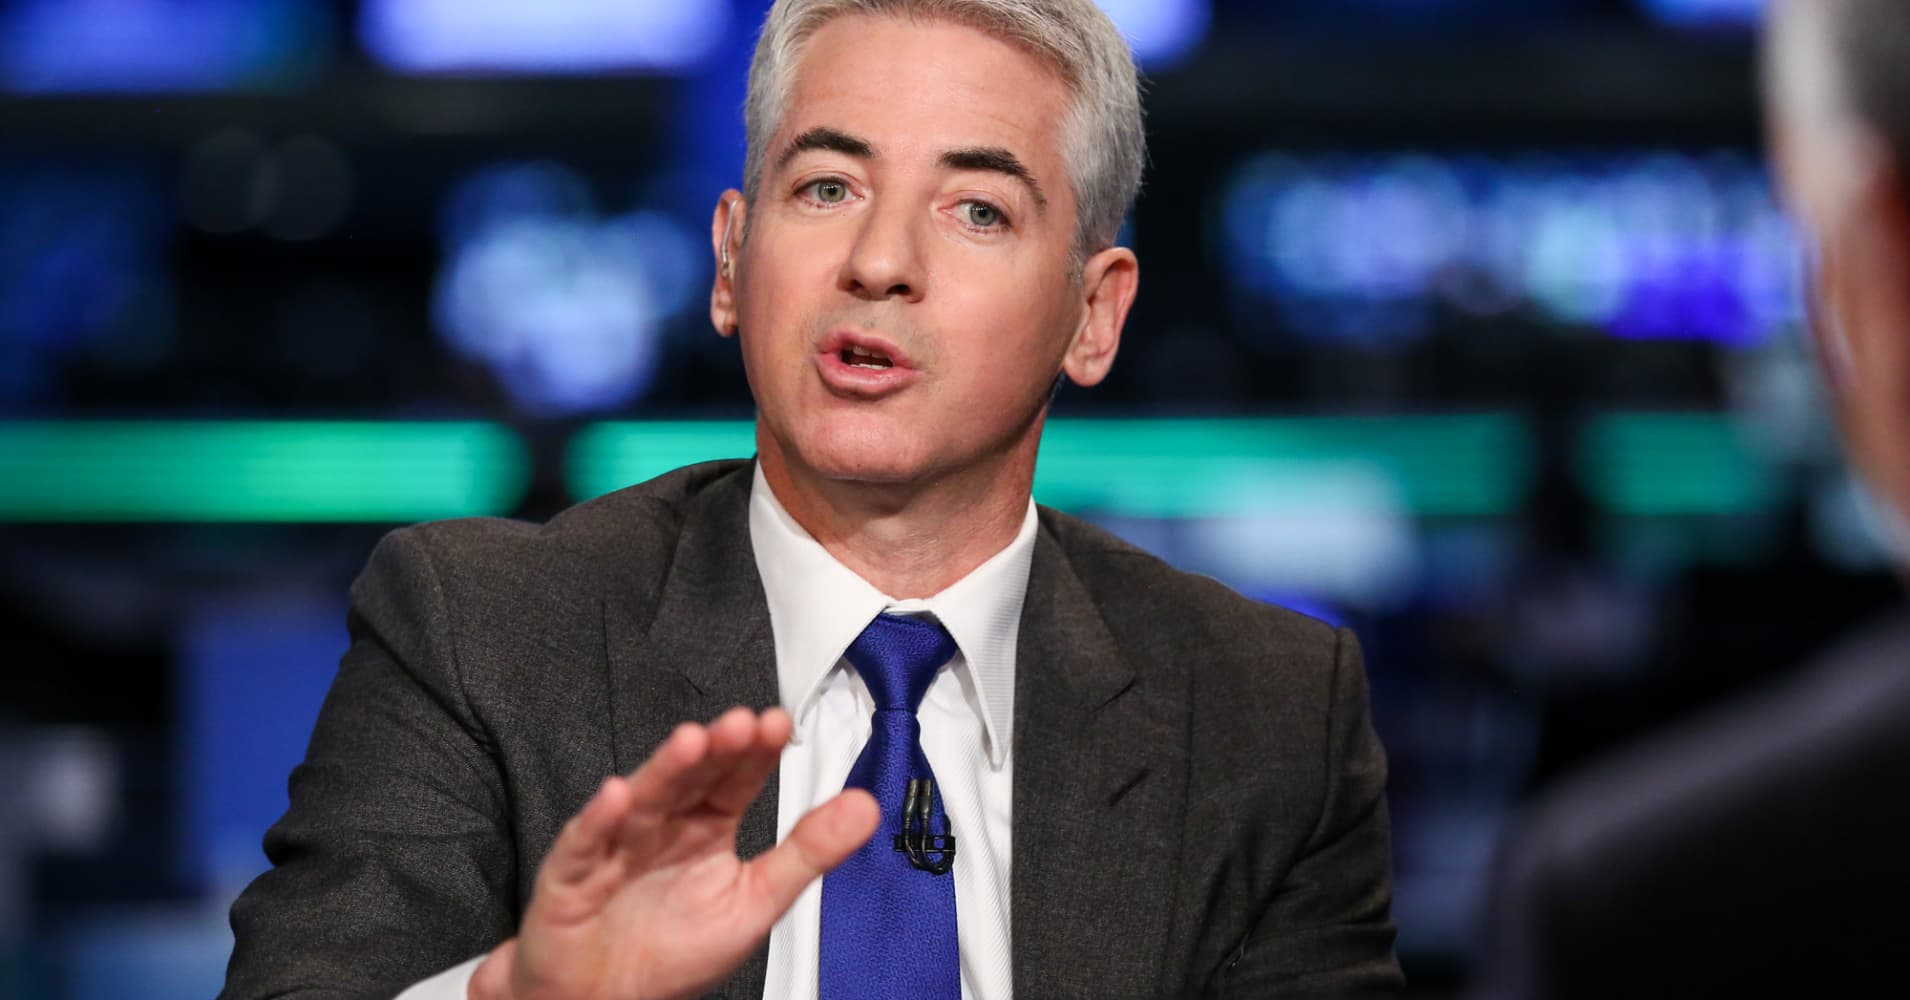 Herbalife prepared a 'secret dossier' on Bill Ackman as it geared up for fight with activist